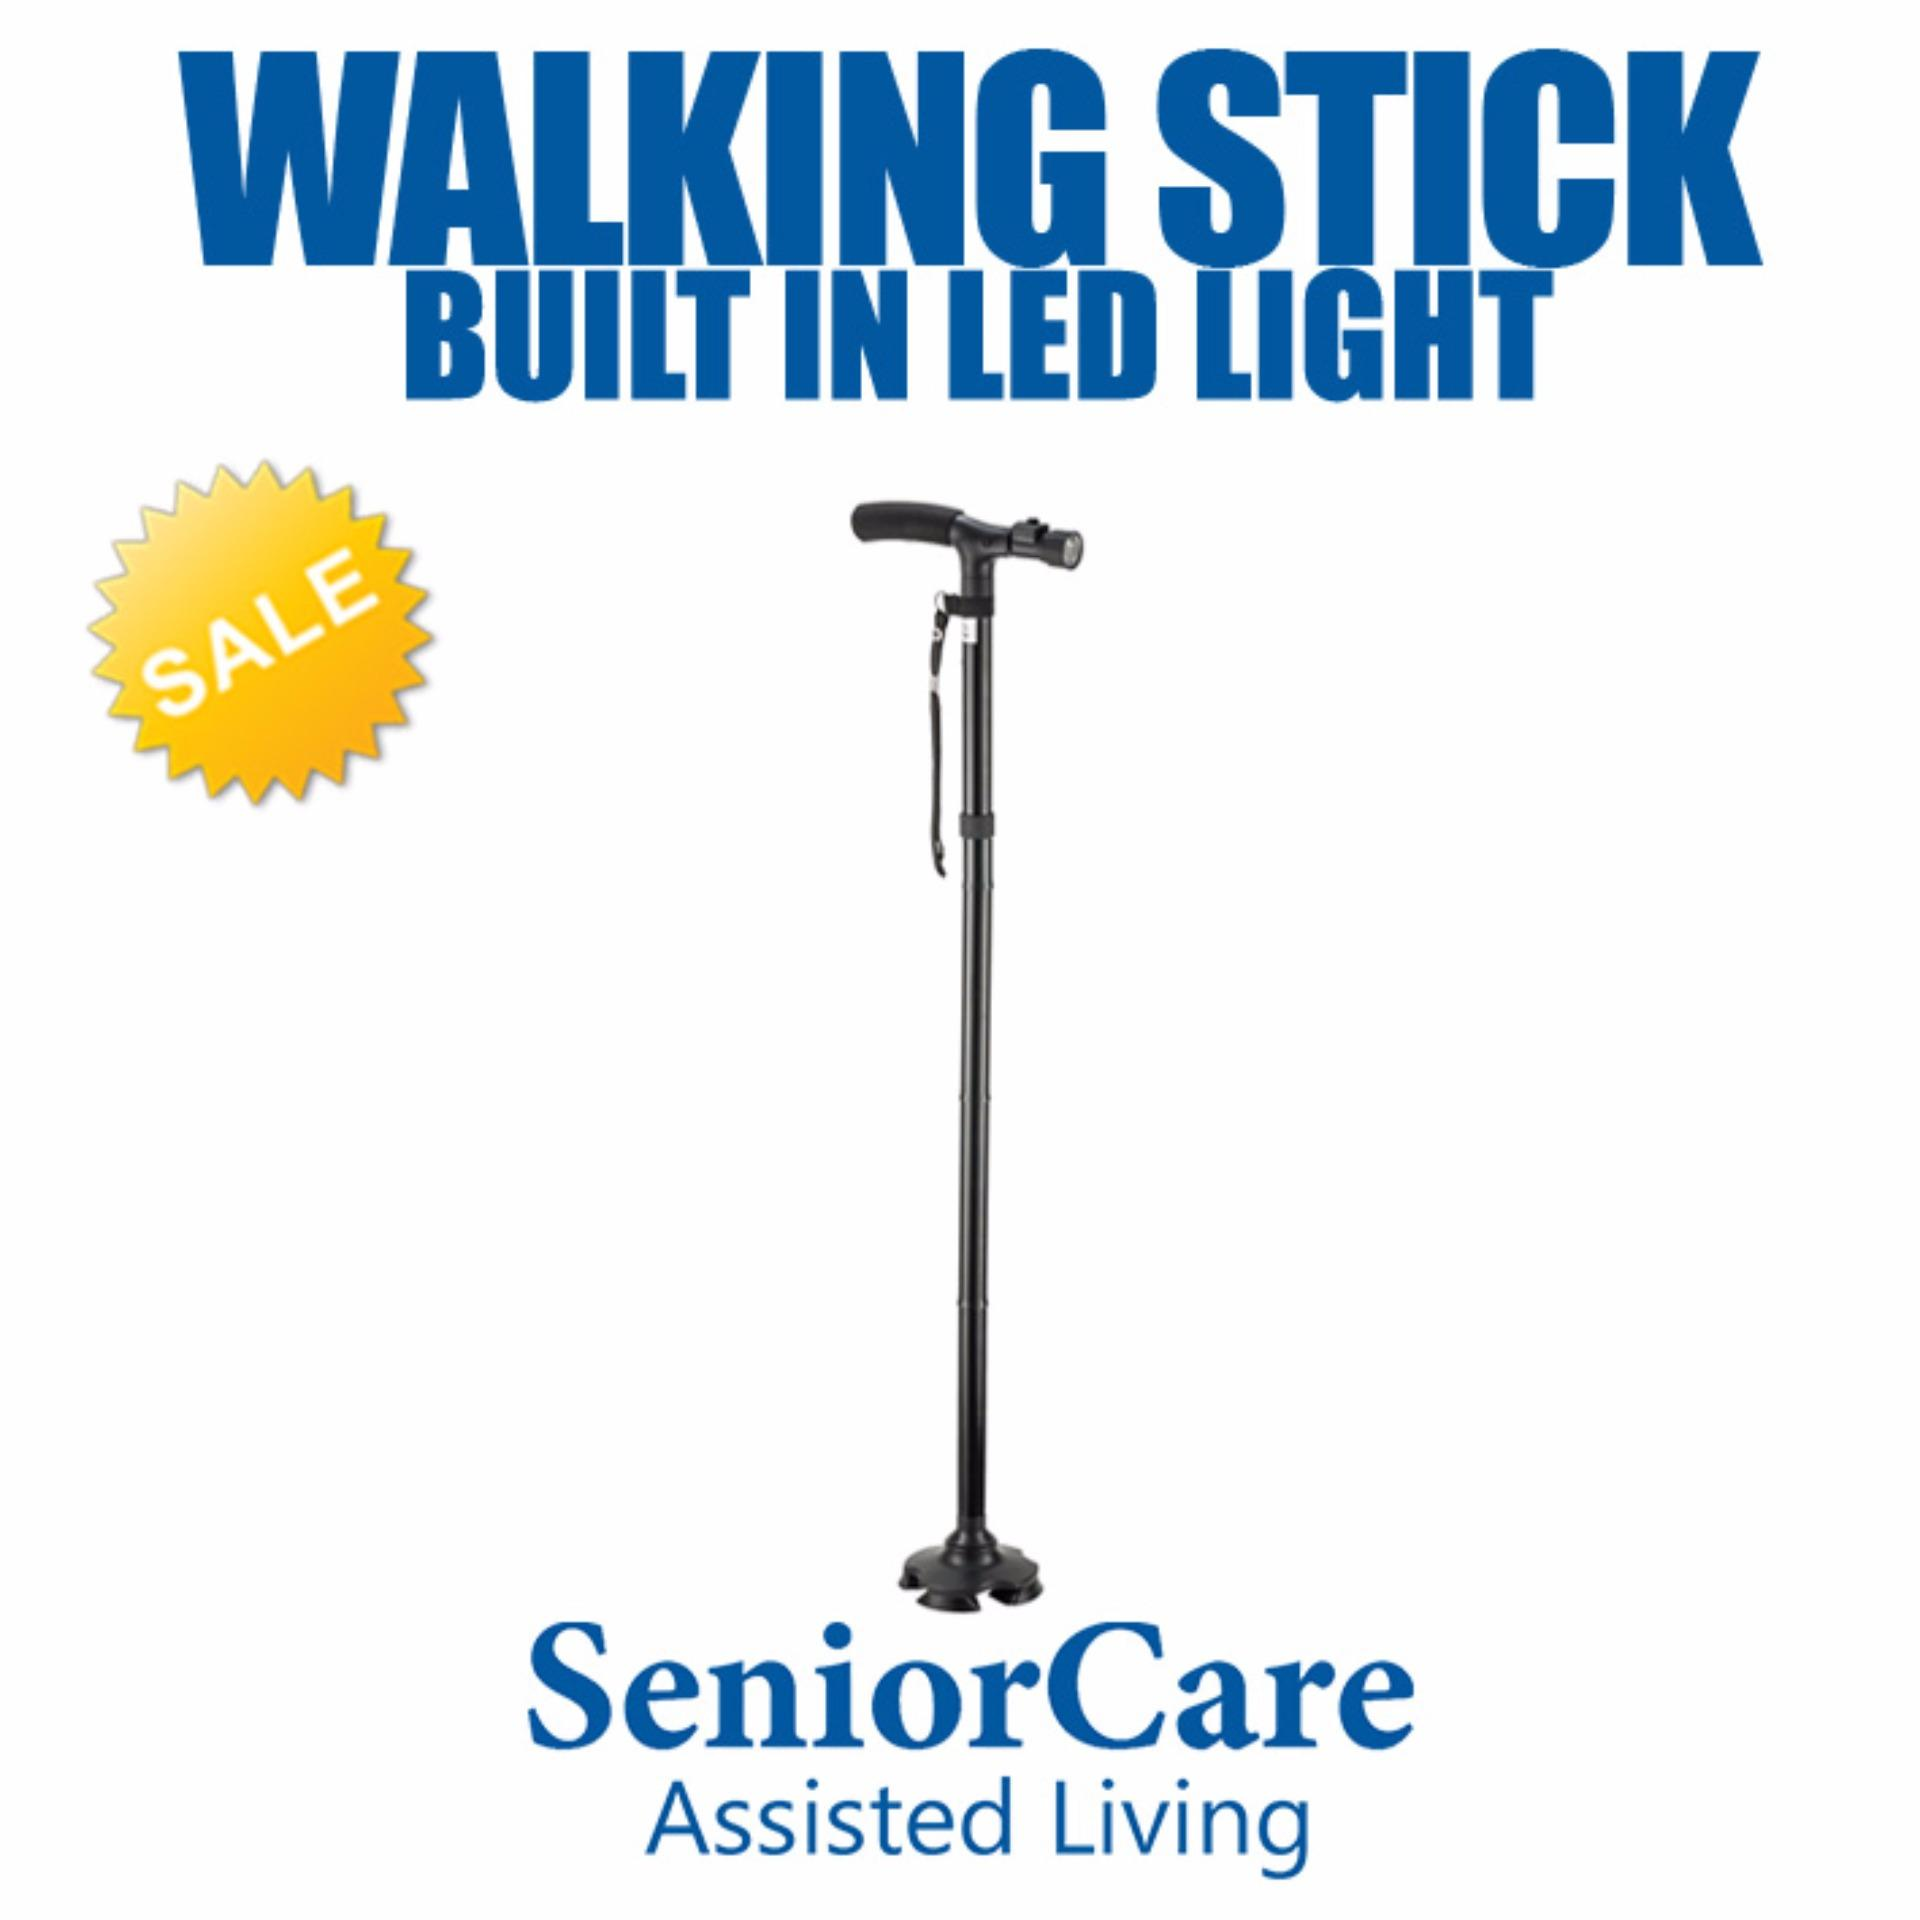 Buy Built-in LED Lightweight Adjustable Height Walking Stick